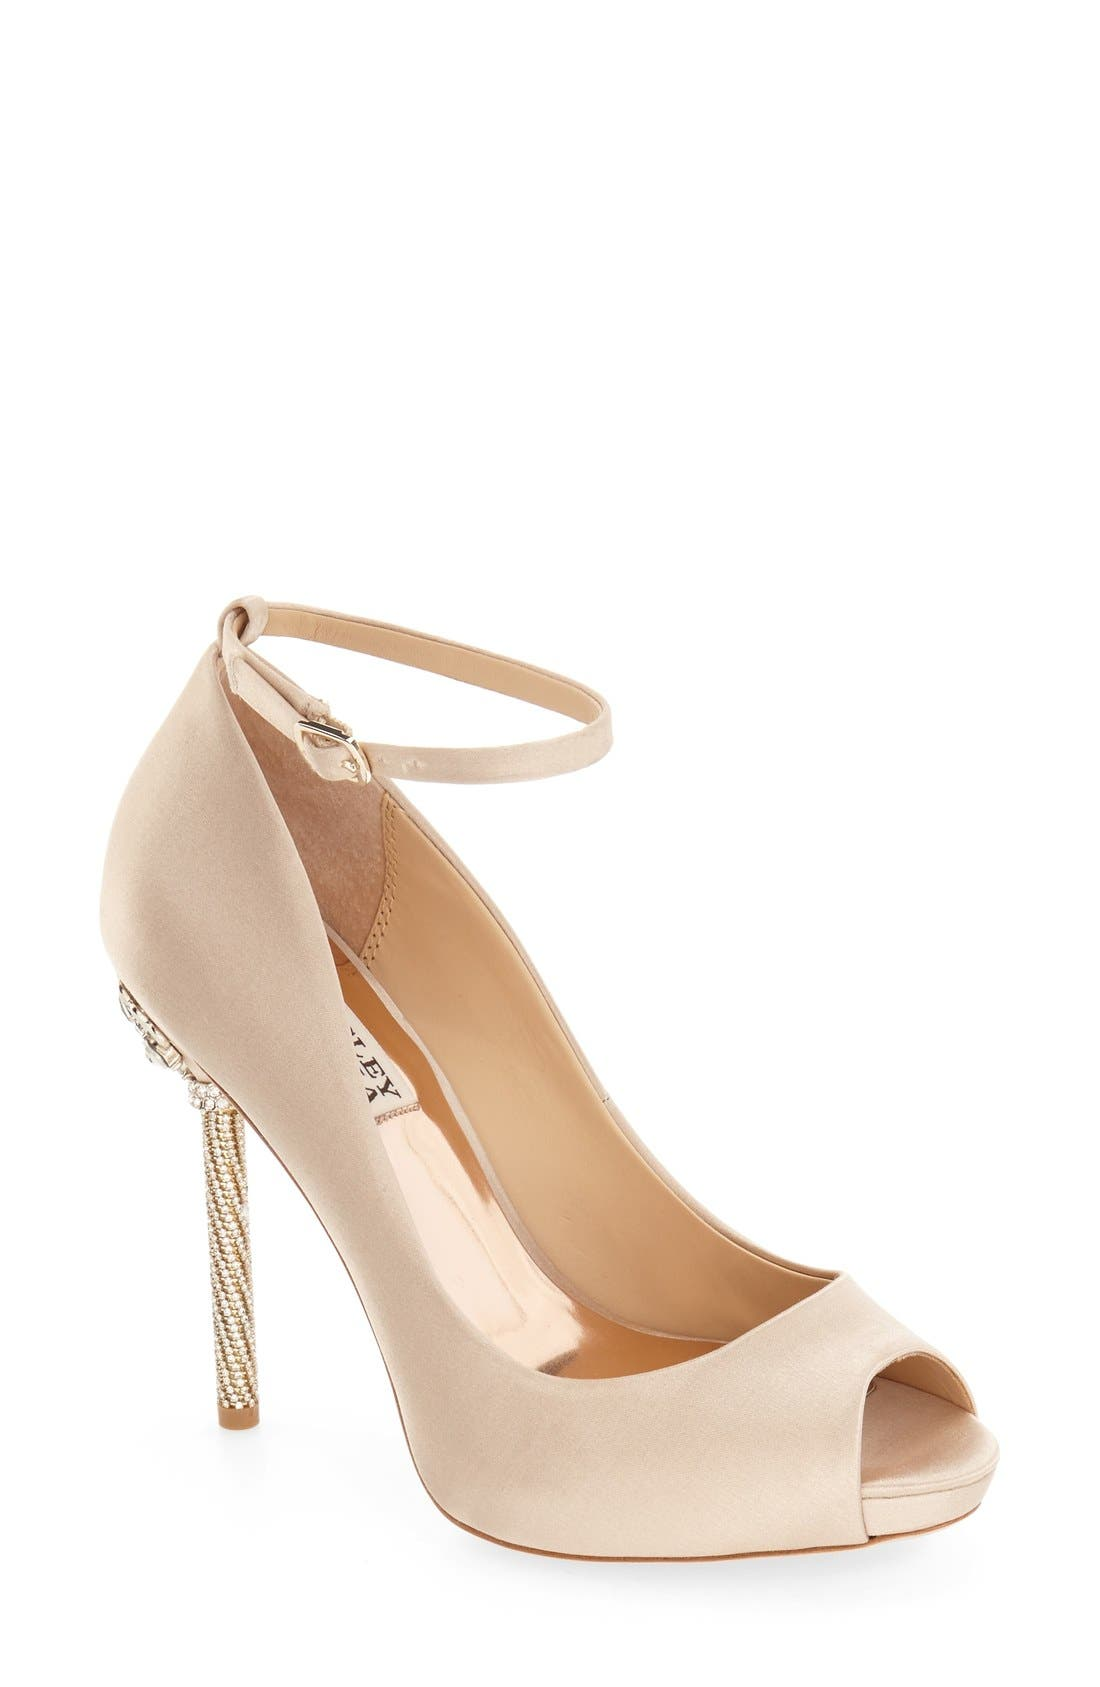 Alternate Image 1 Selected - Badgley Mischka 'Diego' Ankle Strap Pump (Women)